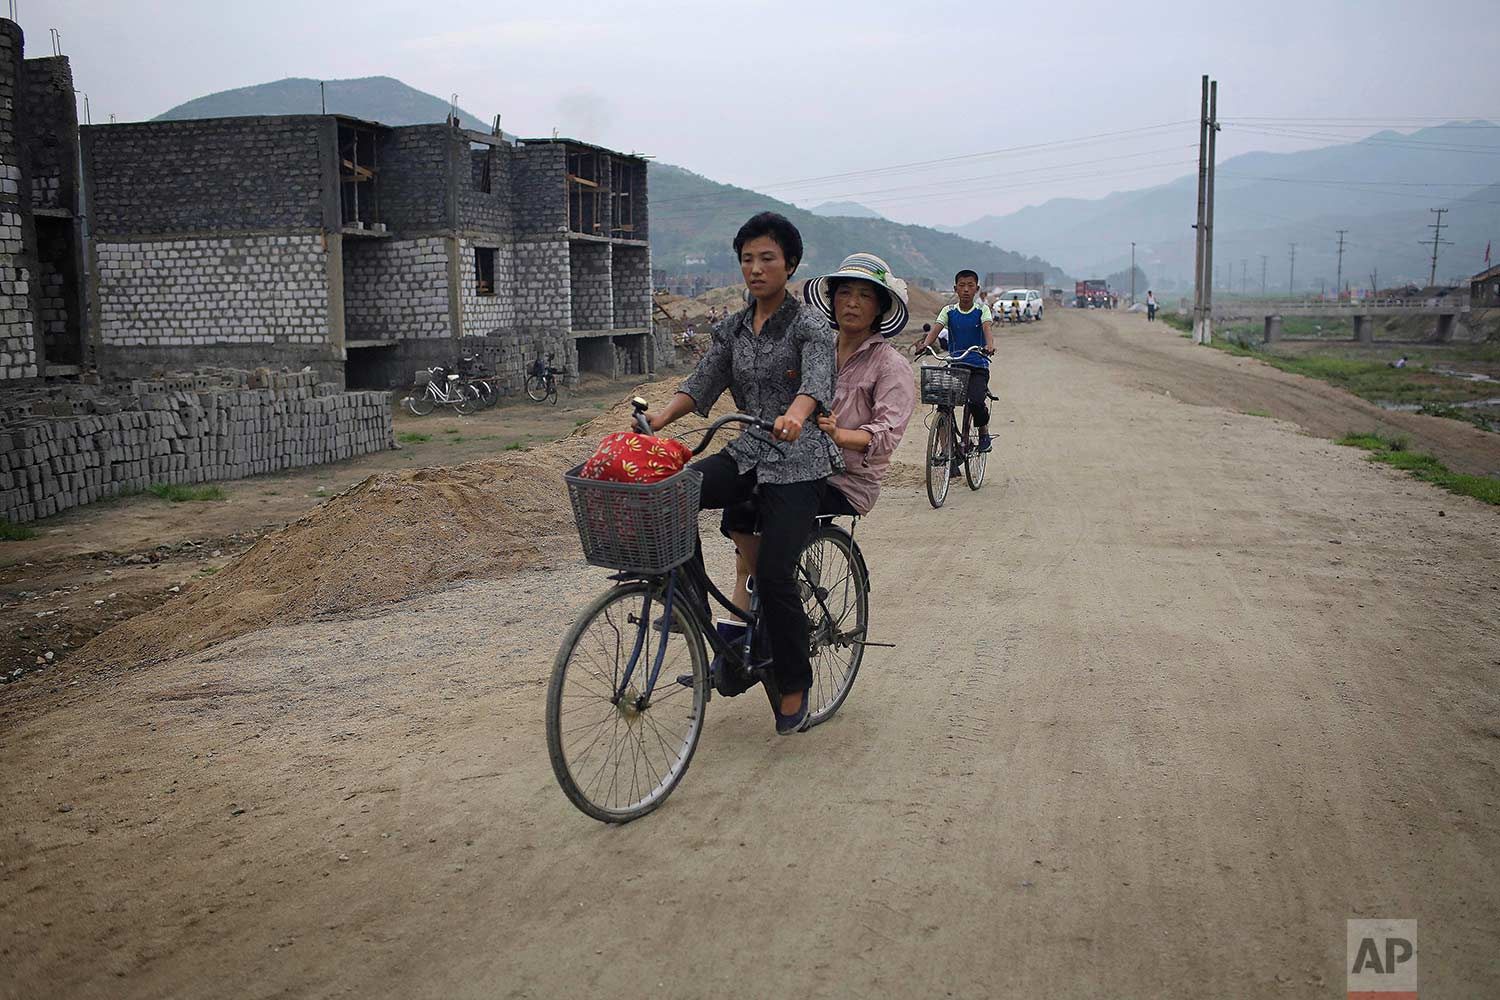 In this Friday, July 21, 2017, photo, women cycle past a construction site on the outskirts of Hamhung, North Korea's second-largest city, where construction workers unearthed a rusted but still potentially deadly mortar round in February. (AP Photo/Wong Maye-E)